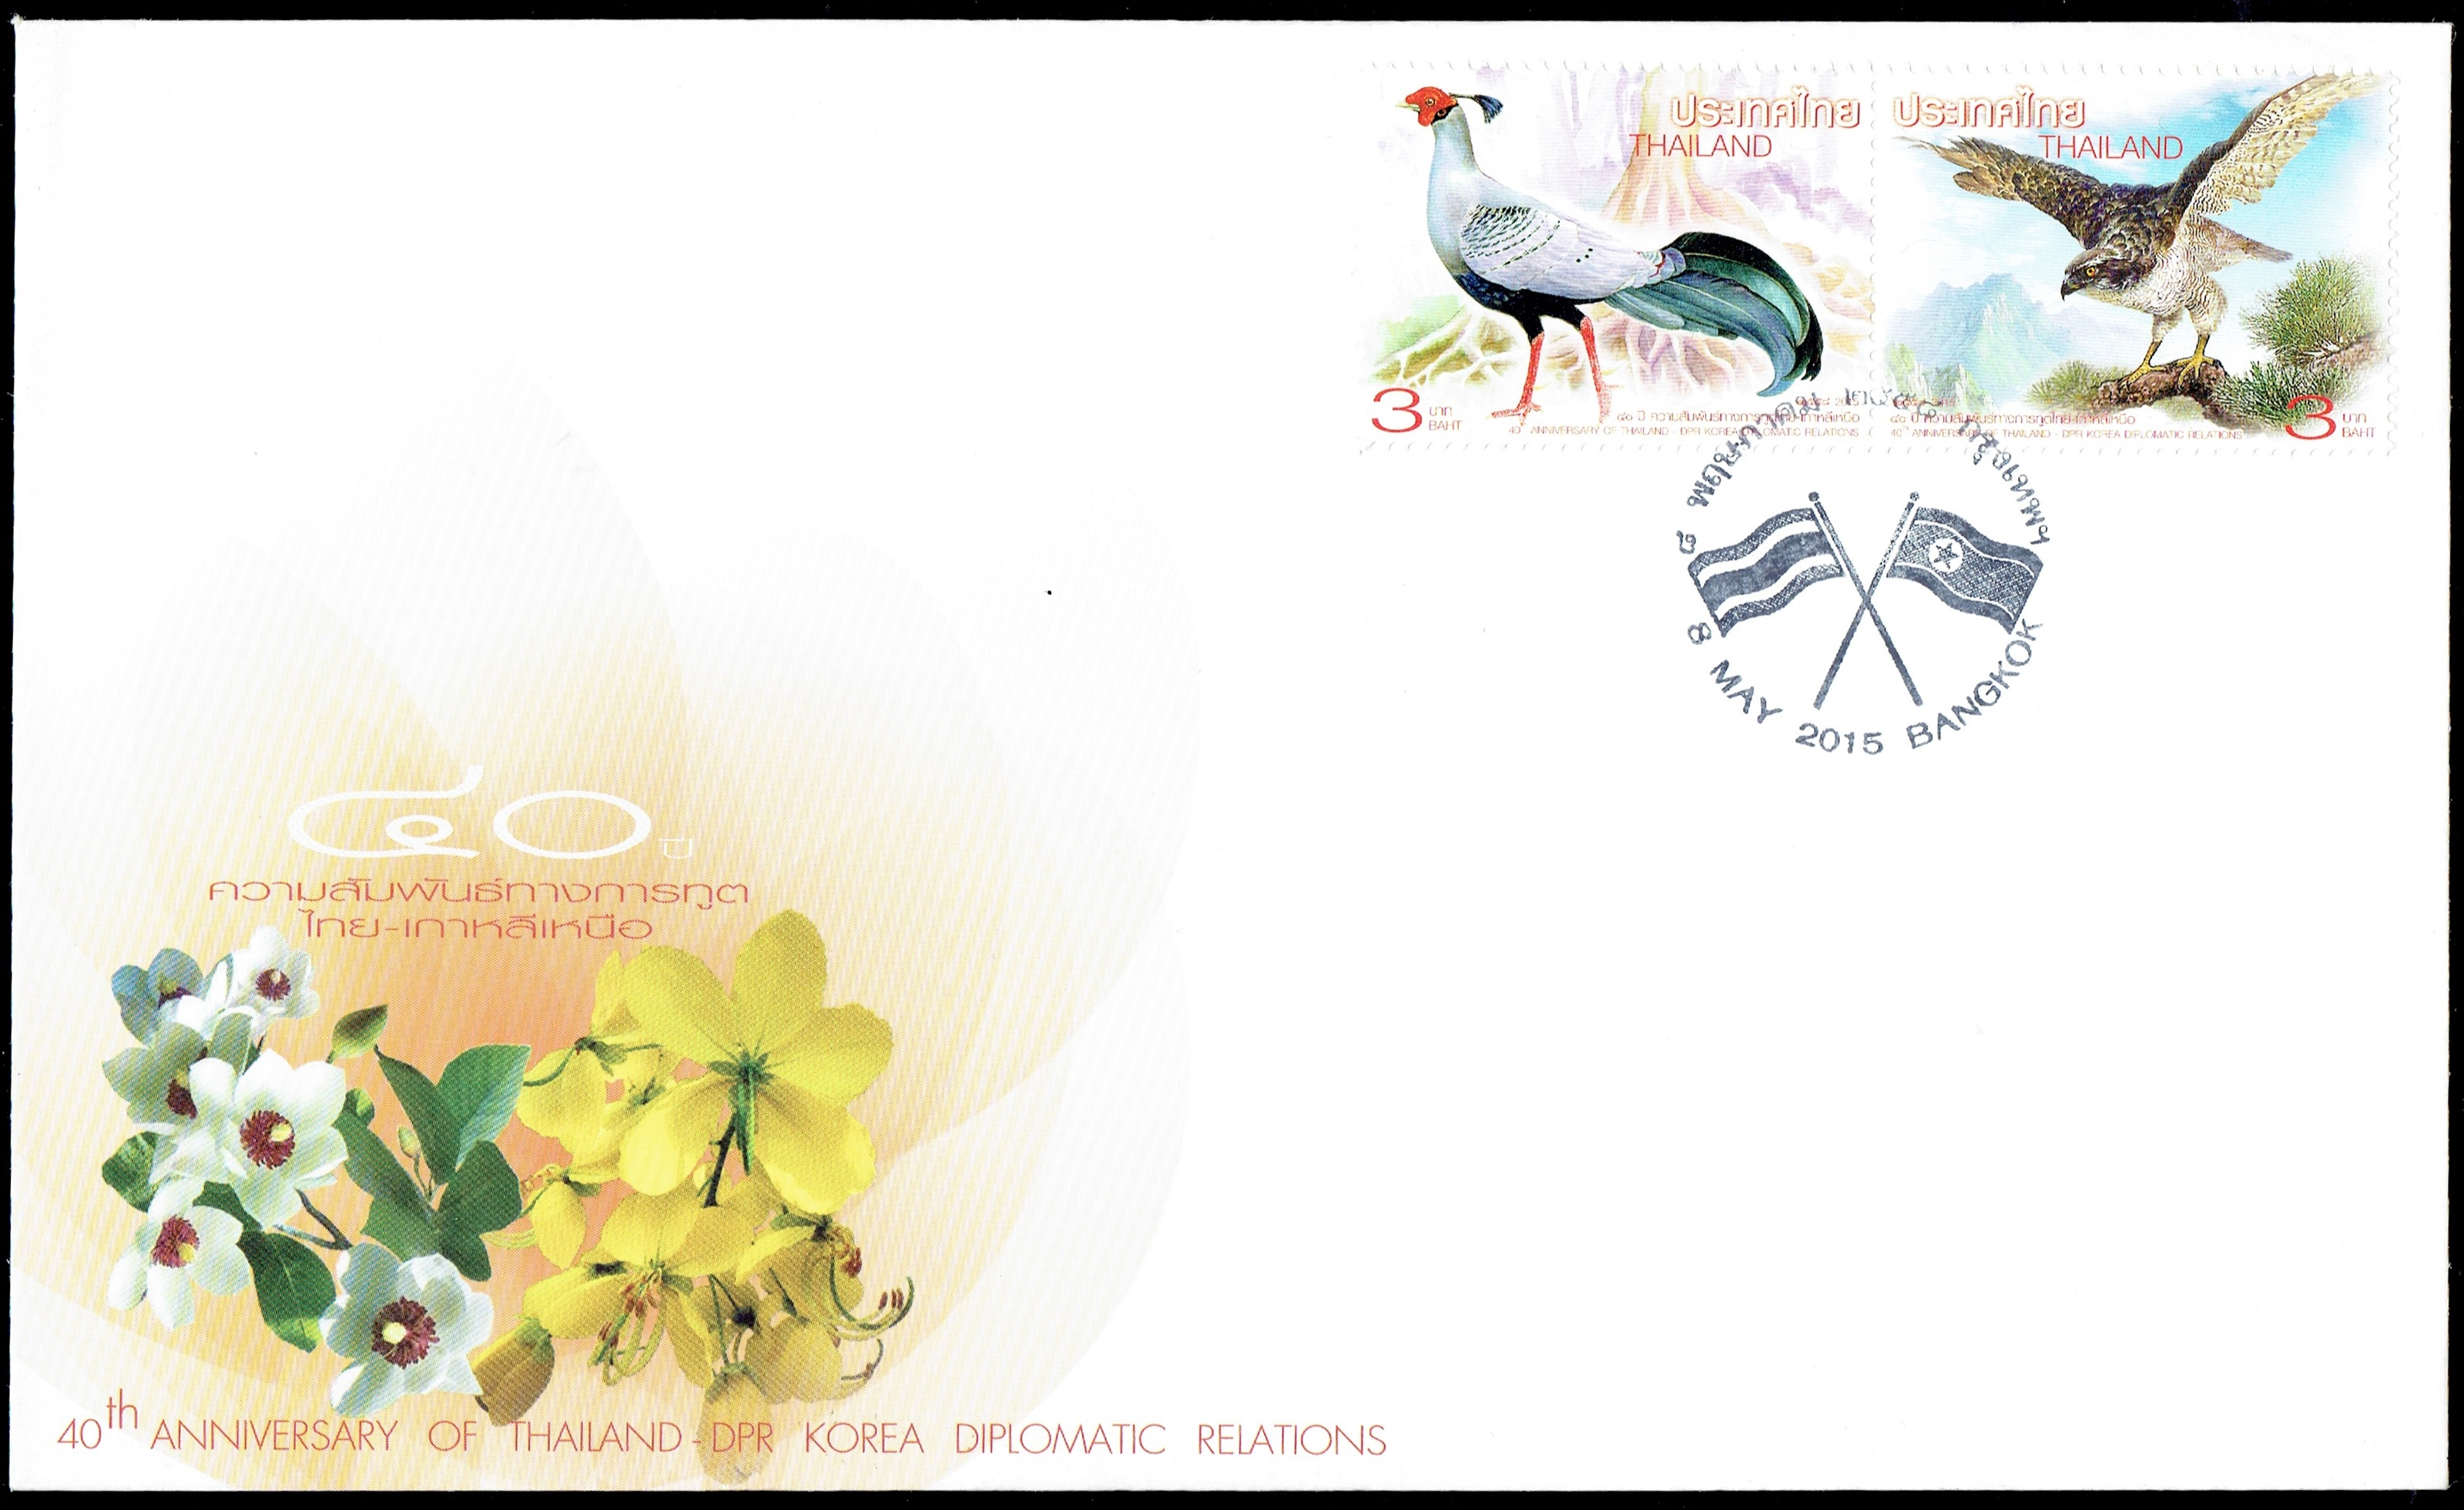 Thailand - Thailand Post #TH-1068 First Day Cover, released May 8, 2015.